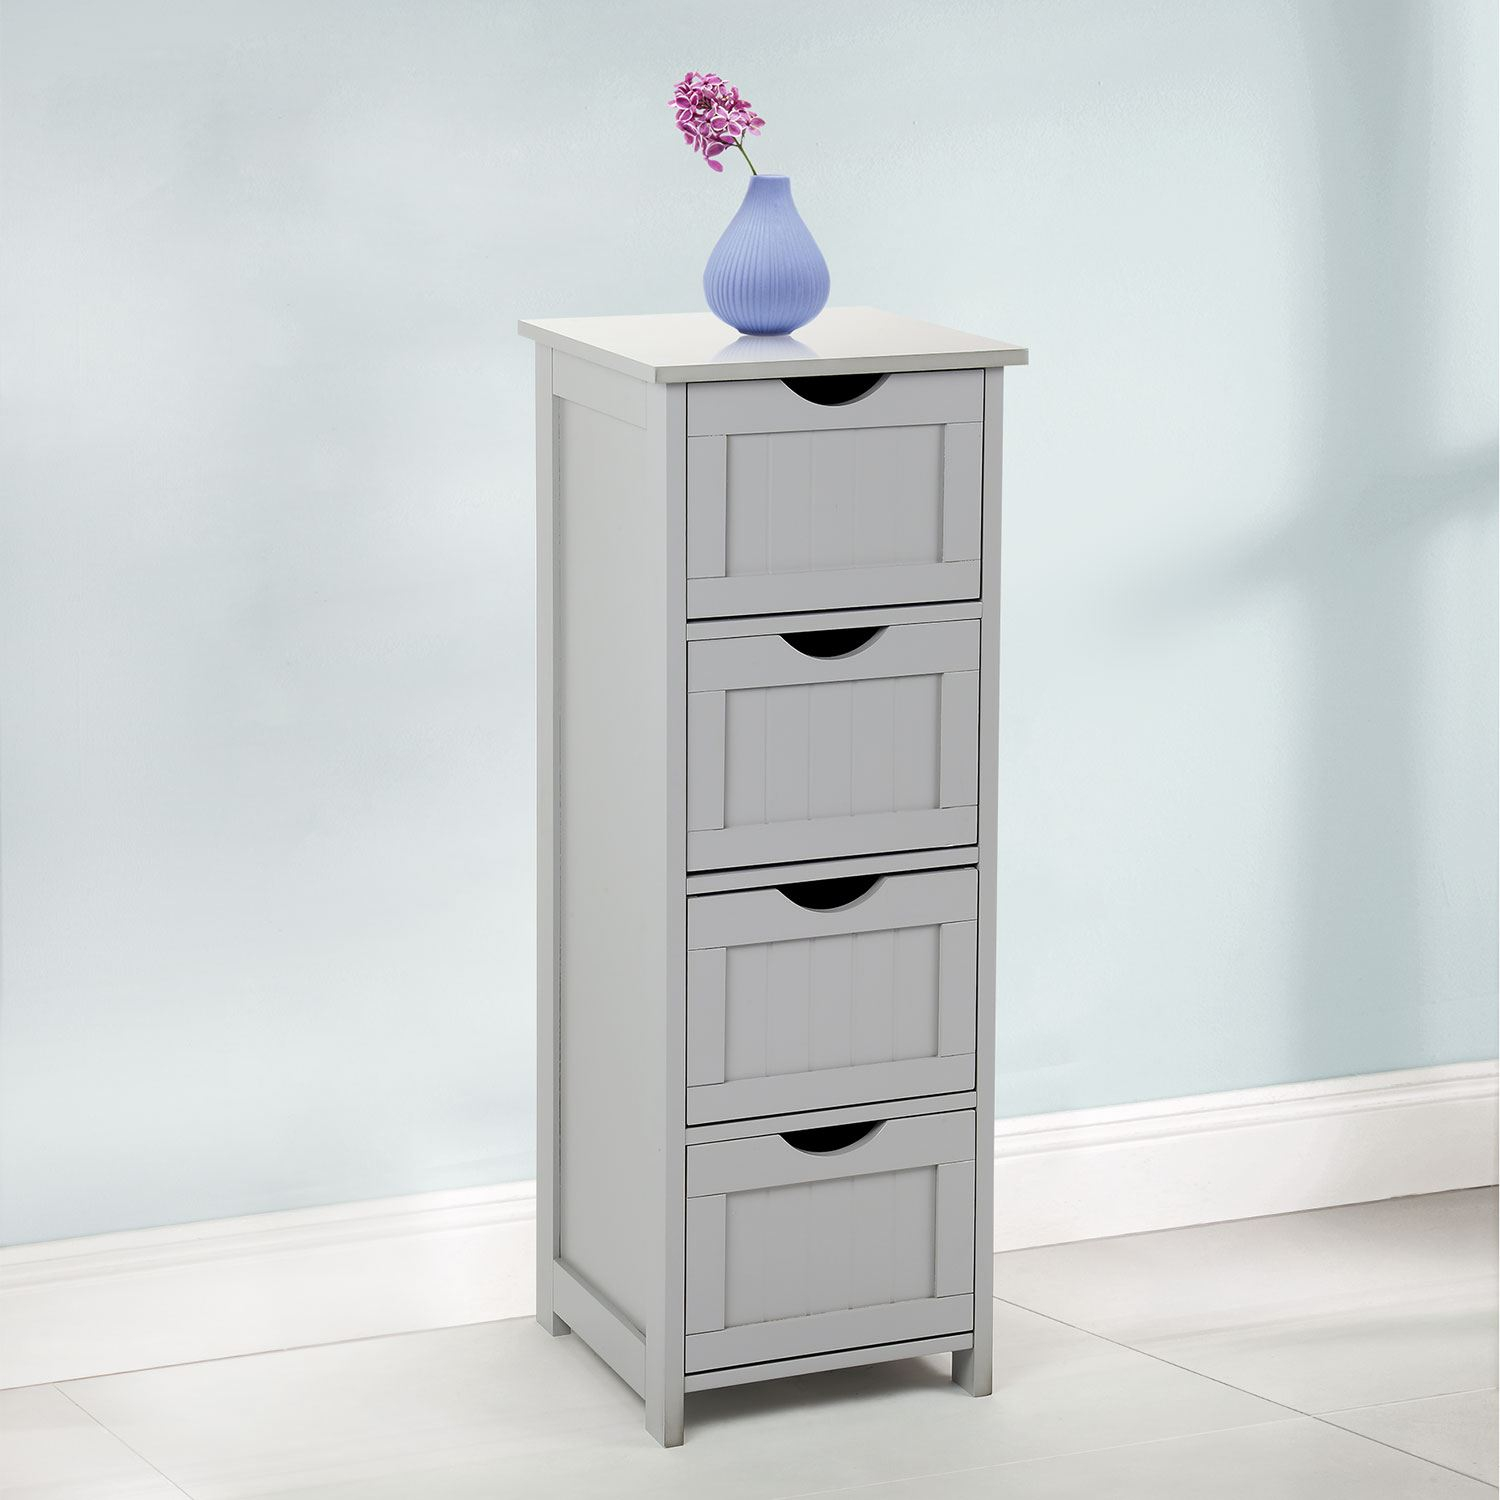 Details About 4 Drawer Slim Chest Tall Bathroom Storage Cabinet Bedroom Hallway Grey with regard to size 1500 X 1500